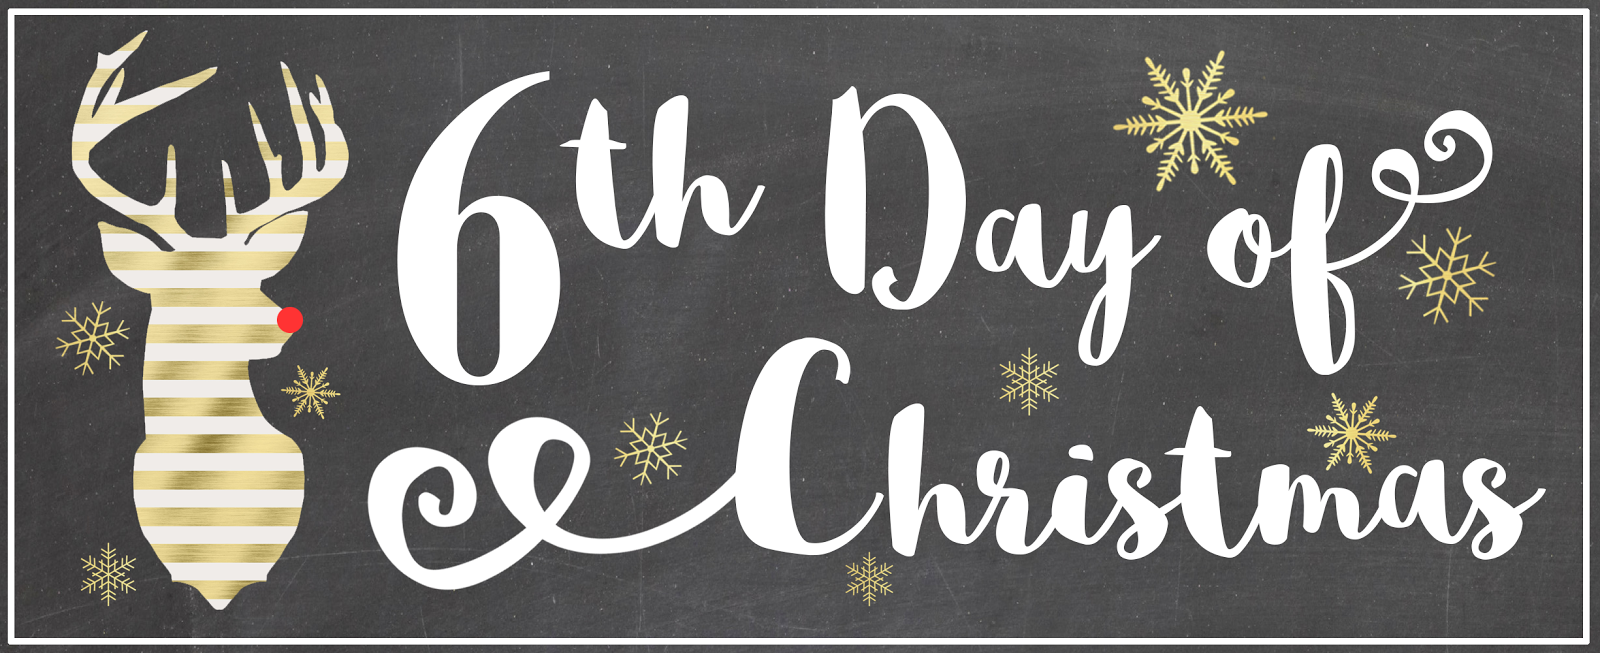 On the 6th day of christmas gift ideas